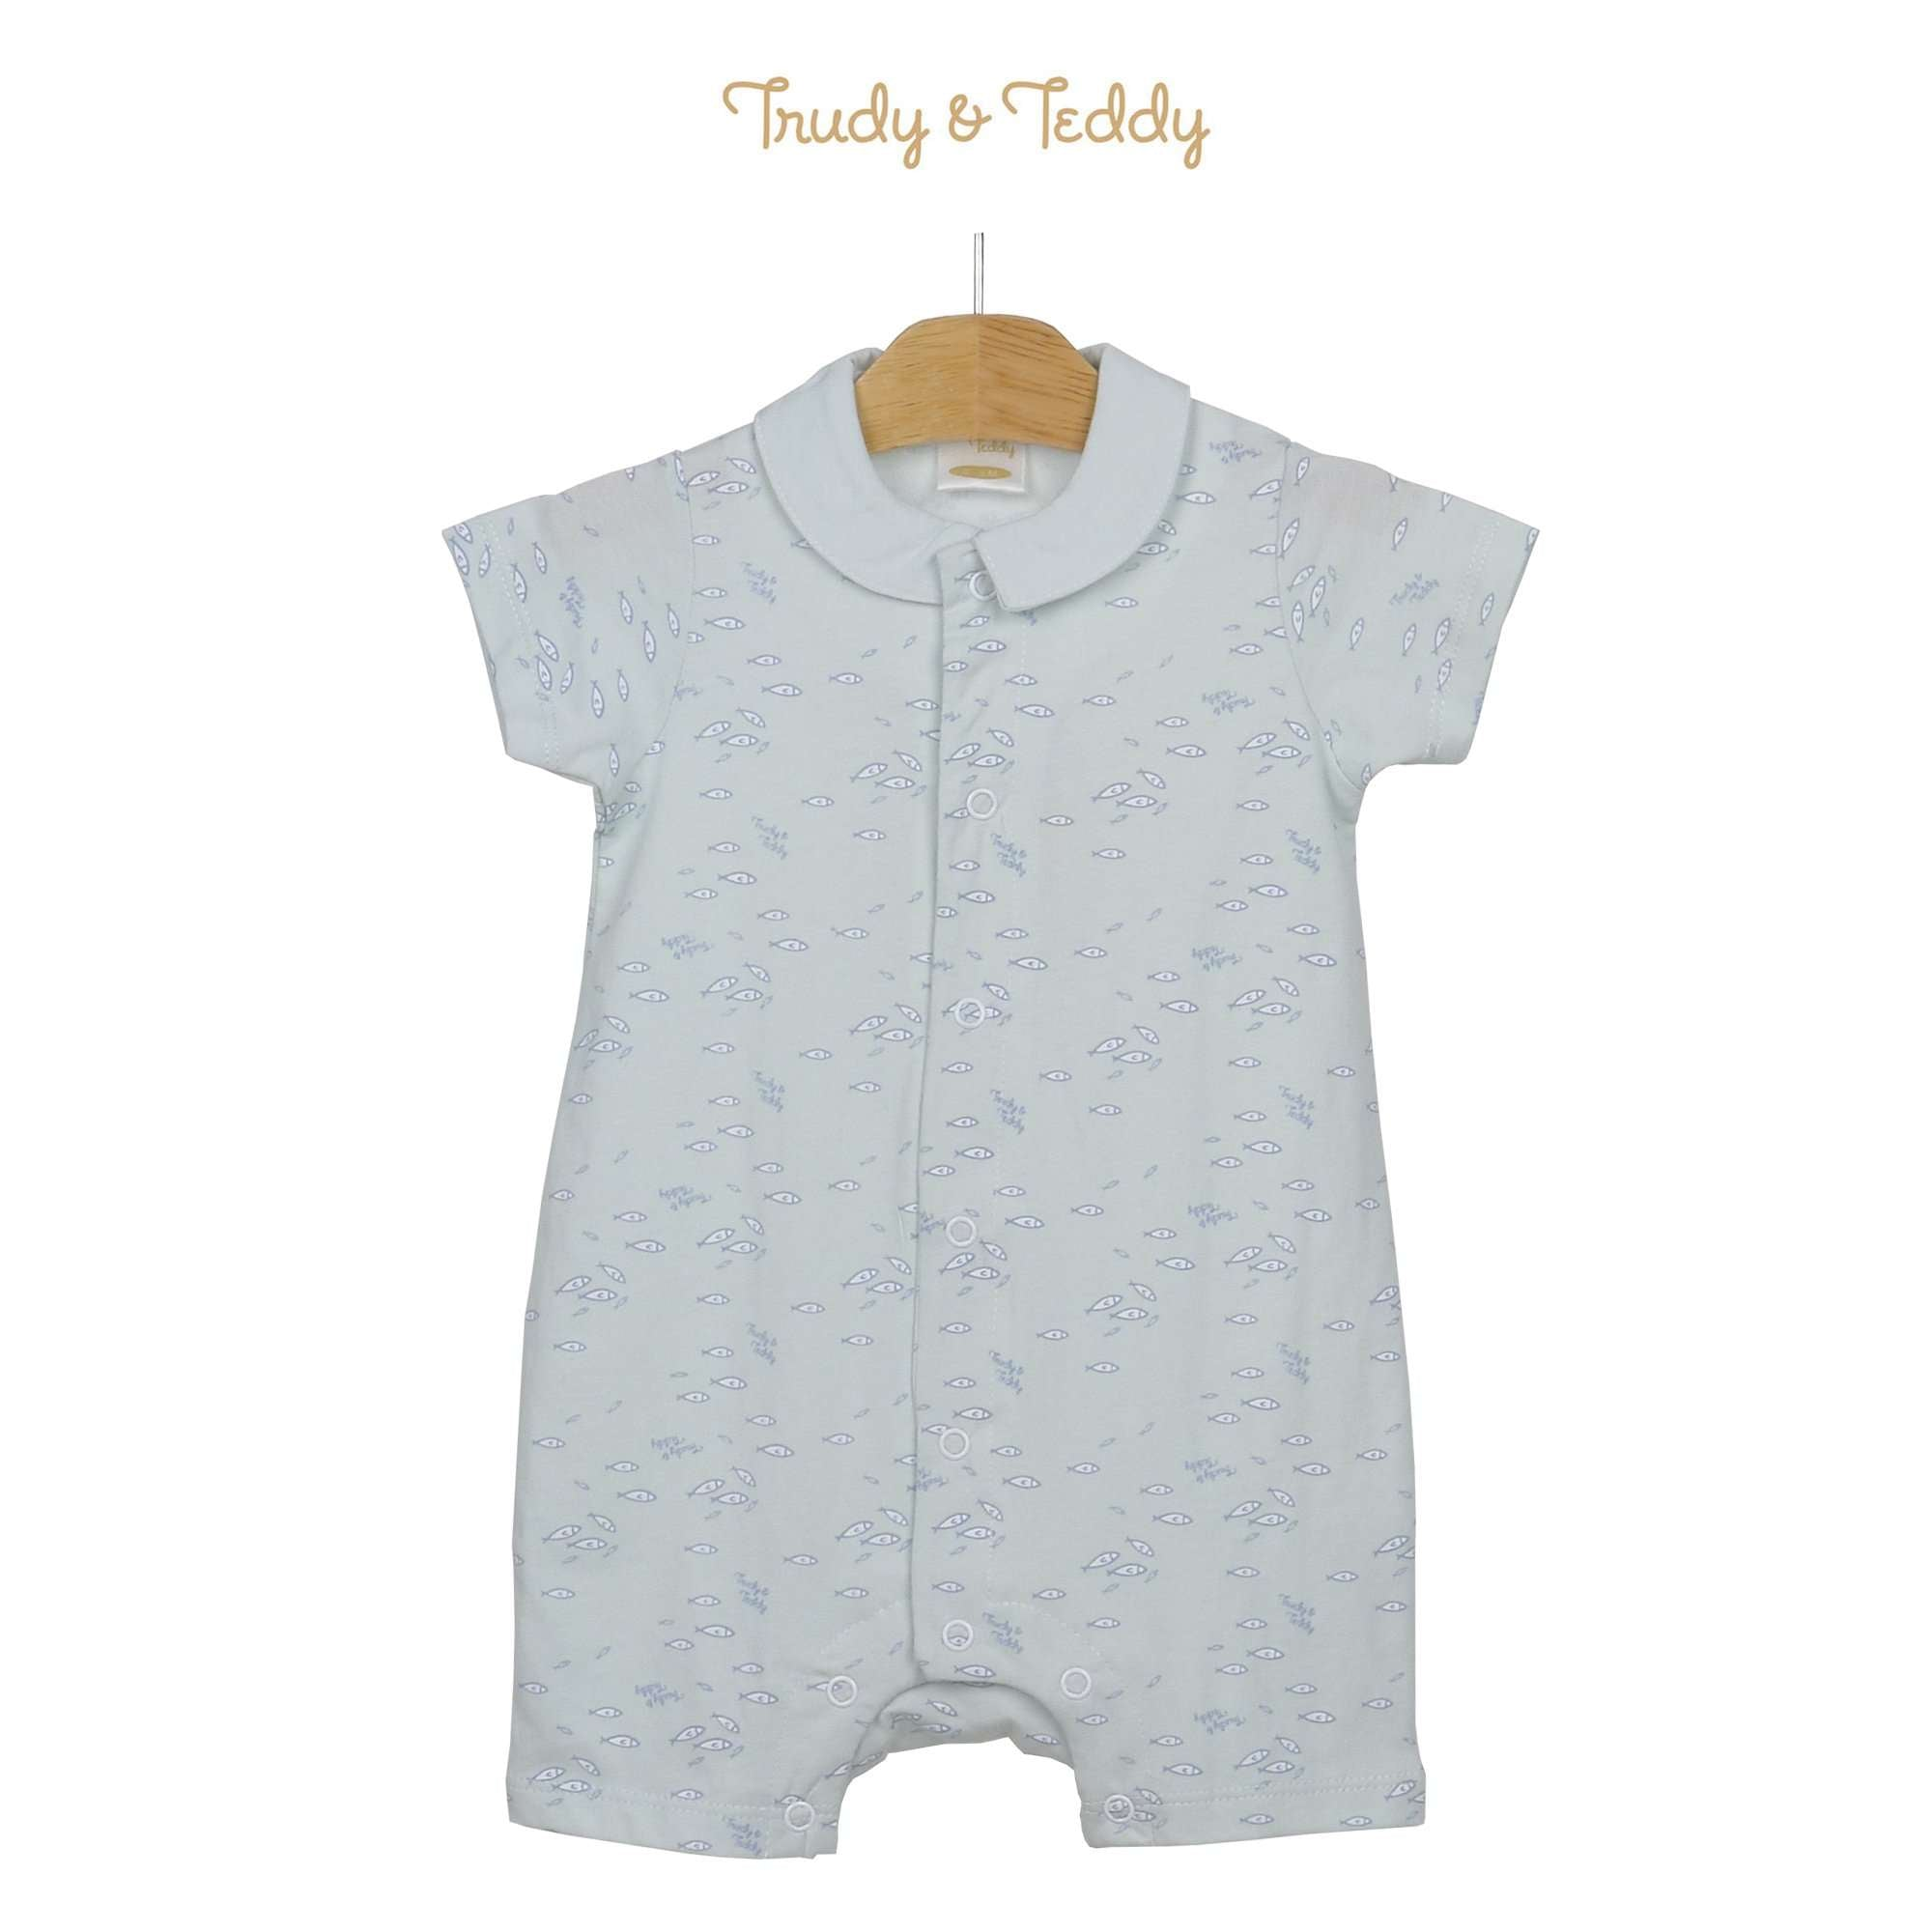 Trudy & Teddy Baby Boy Short Sleeve Short Romper 820038-361 : Buy Trudy & Teddy online at CMG.MY